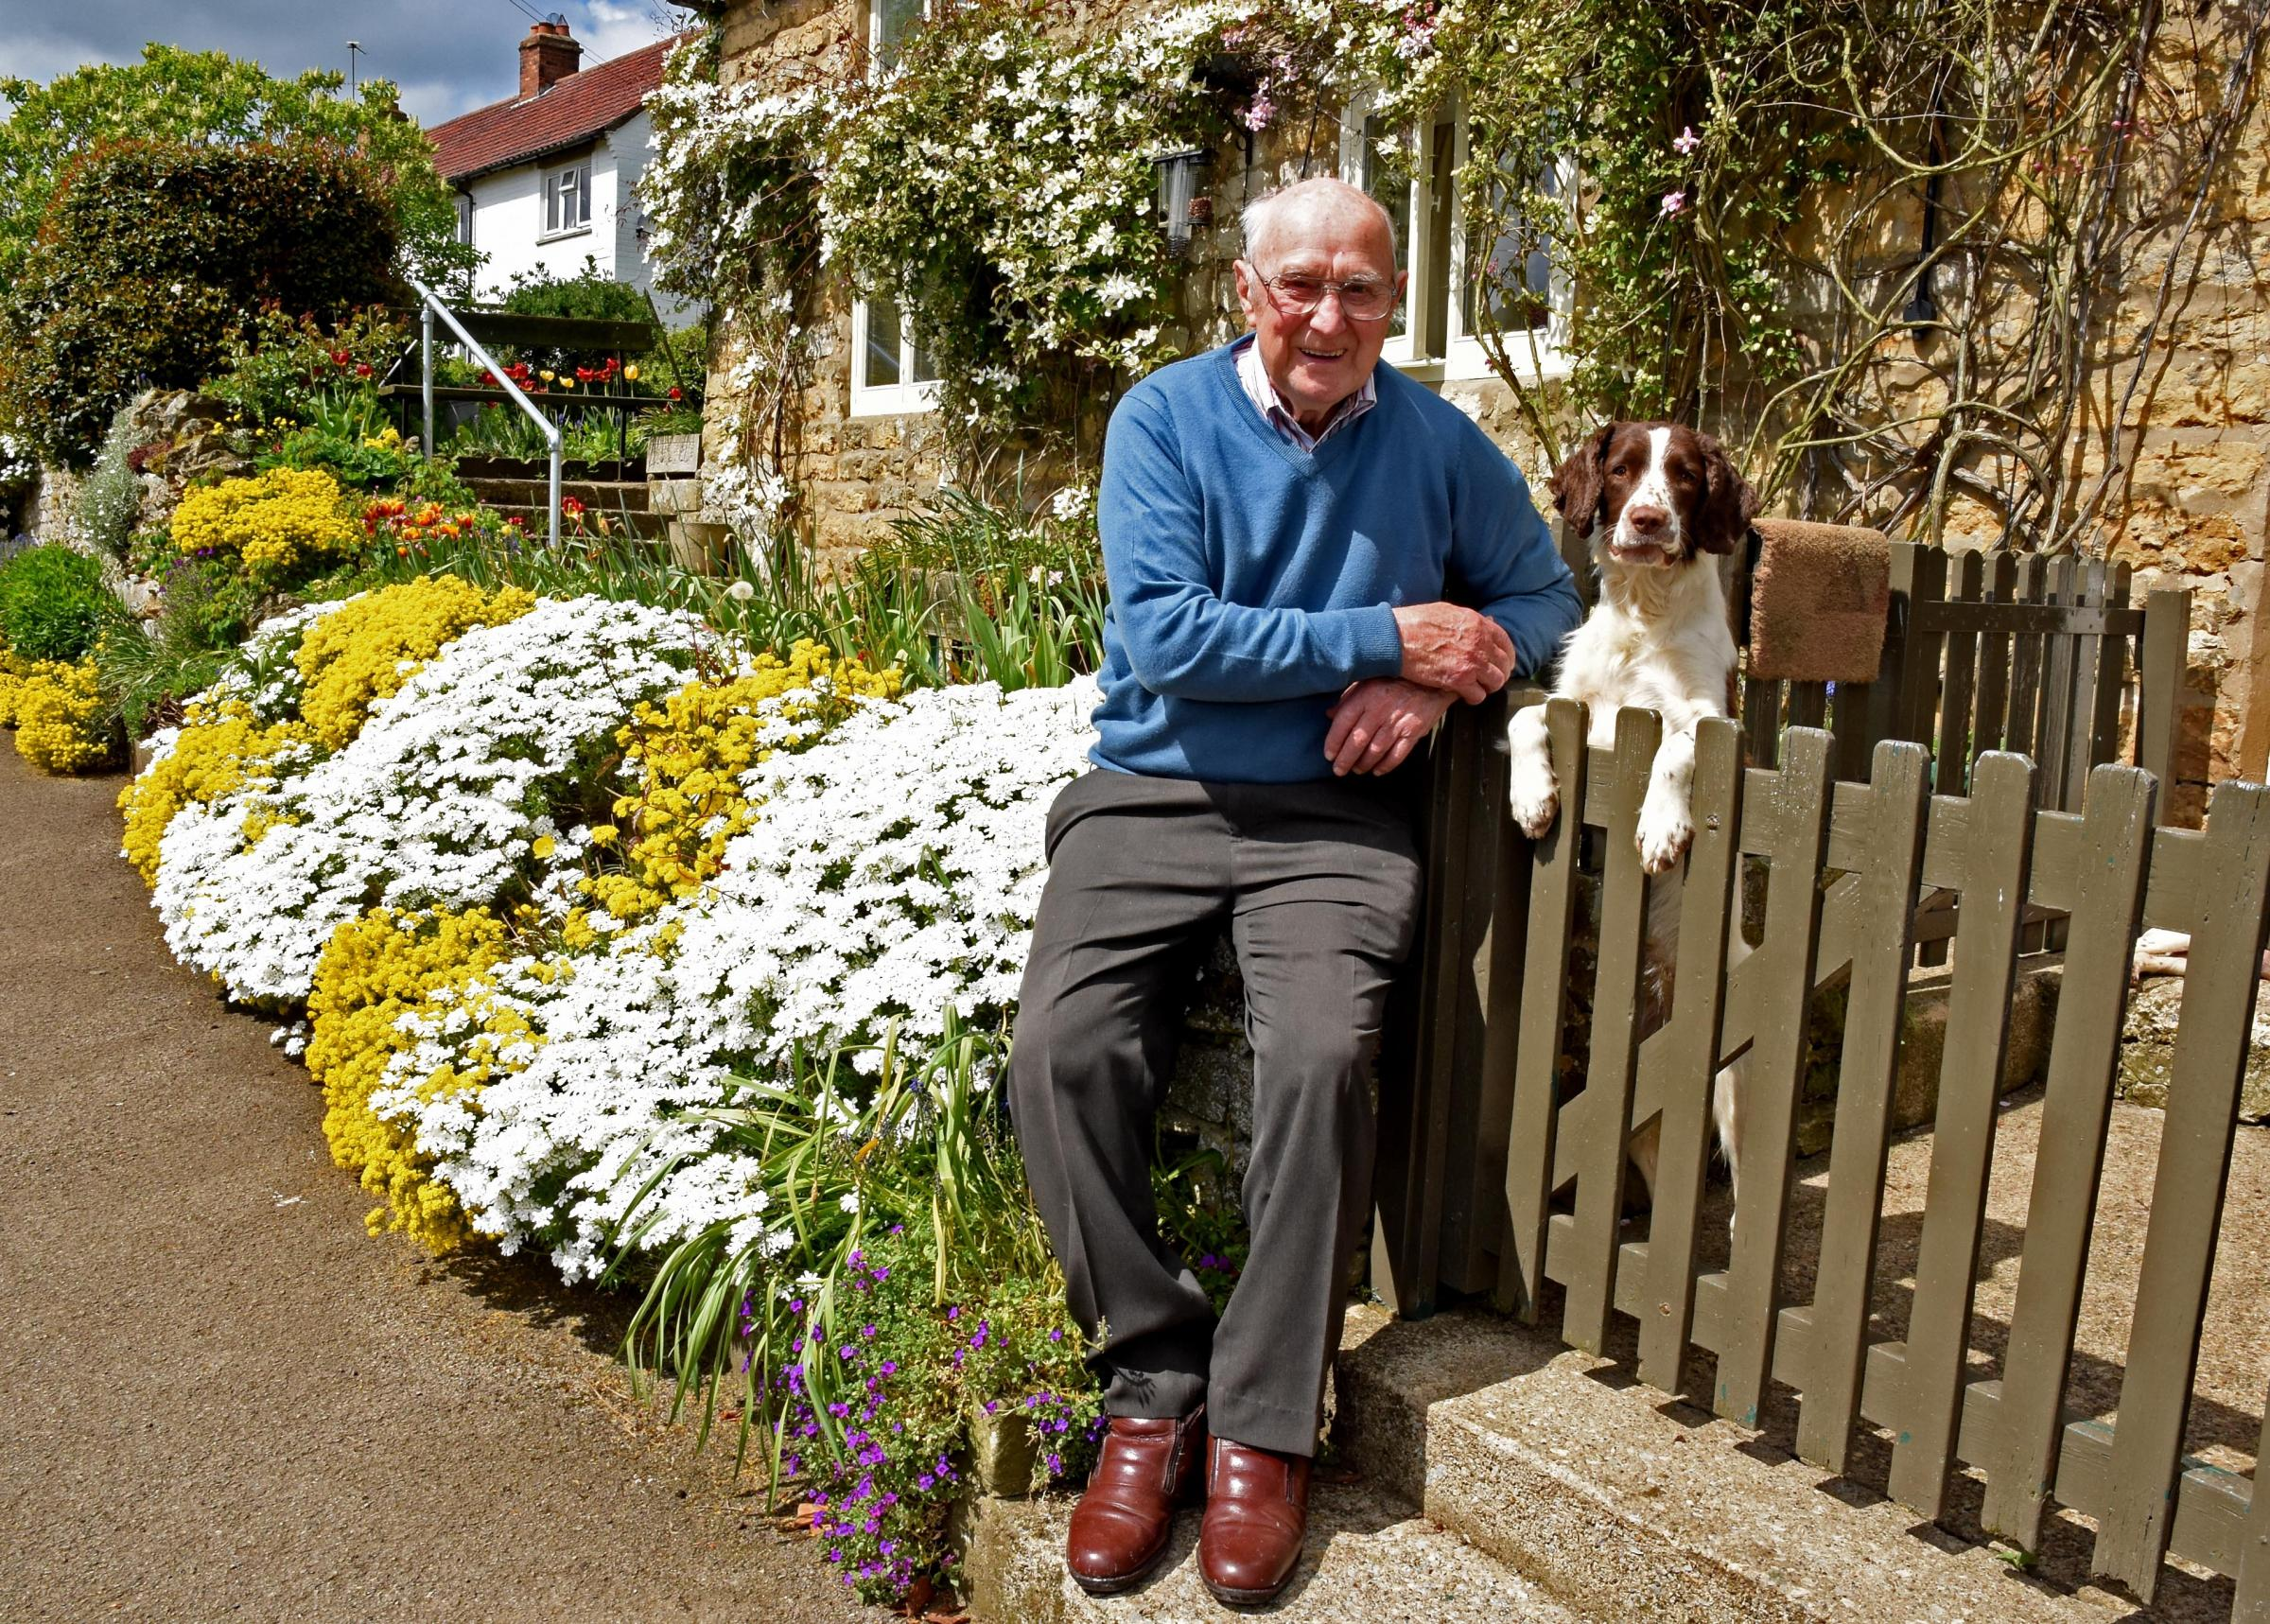 Bernard Simpson, pictured, with Rolo, in the village of Beadlam where he founded the village tractor run in 2003, which over the years has raised £102,000 for the Yorkshire Air Ambulance Picture: Nigel Holland